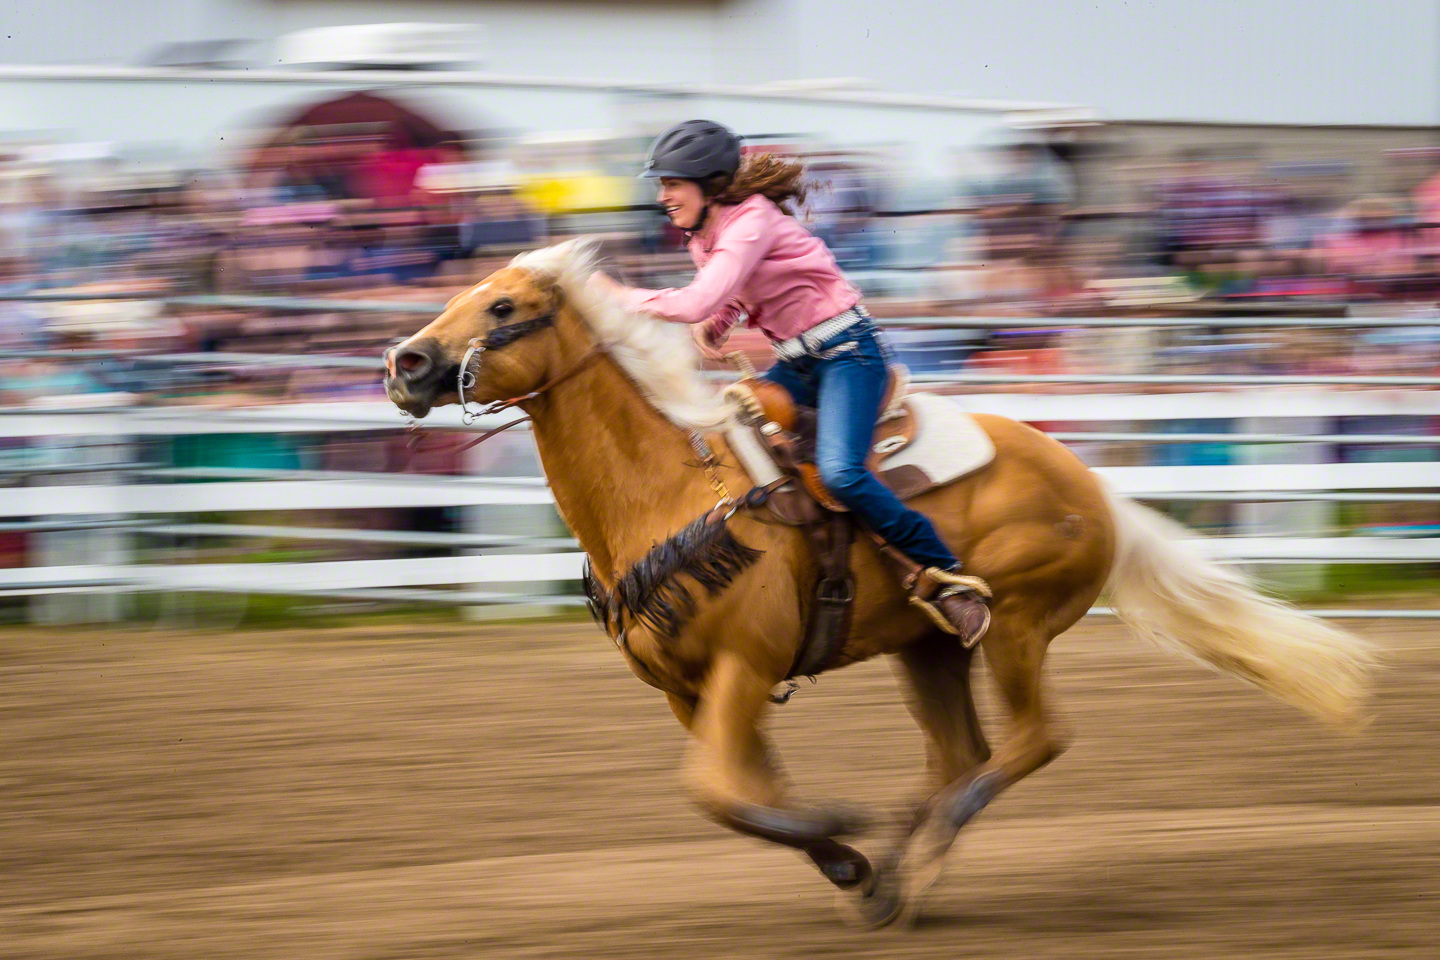 Camera in continuous auto focus, with me tracking the rider and holding down the AF-ON button with a slow shutter speed and a pan to capture the motion of the horse and rider. Without back button focus, this shot would not have happened as successfully.